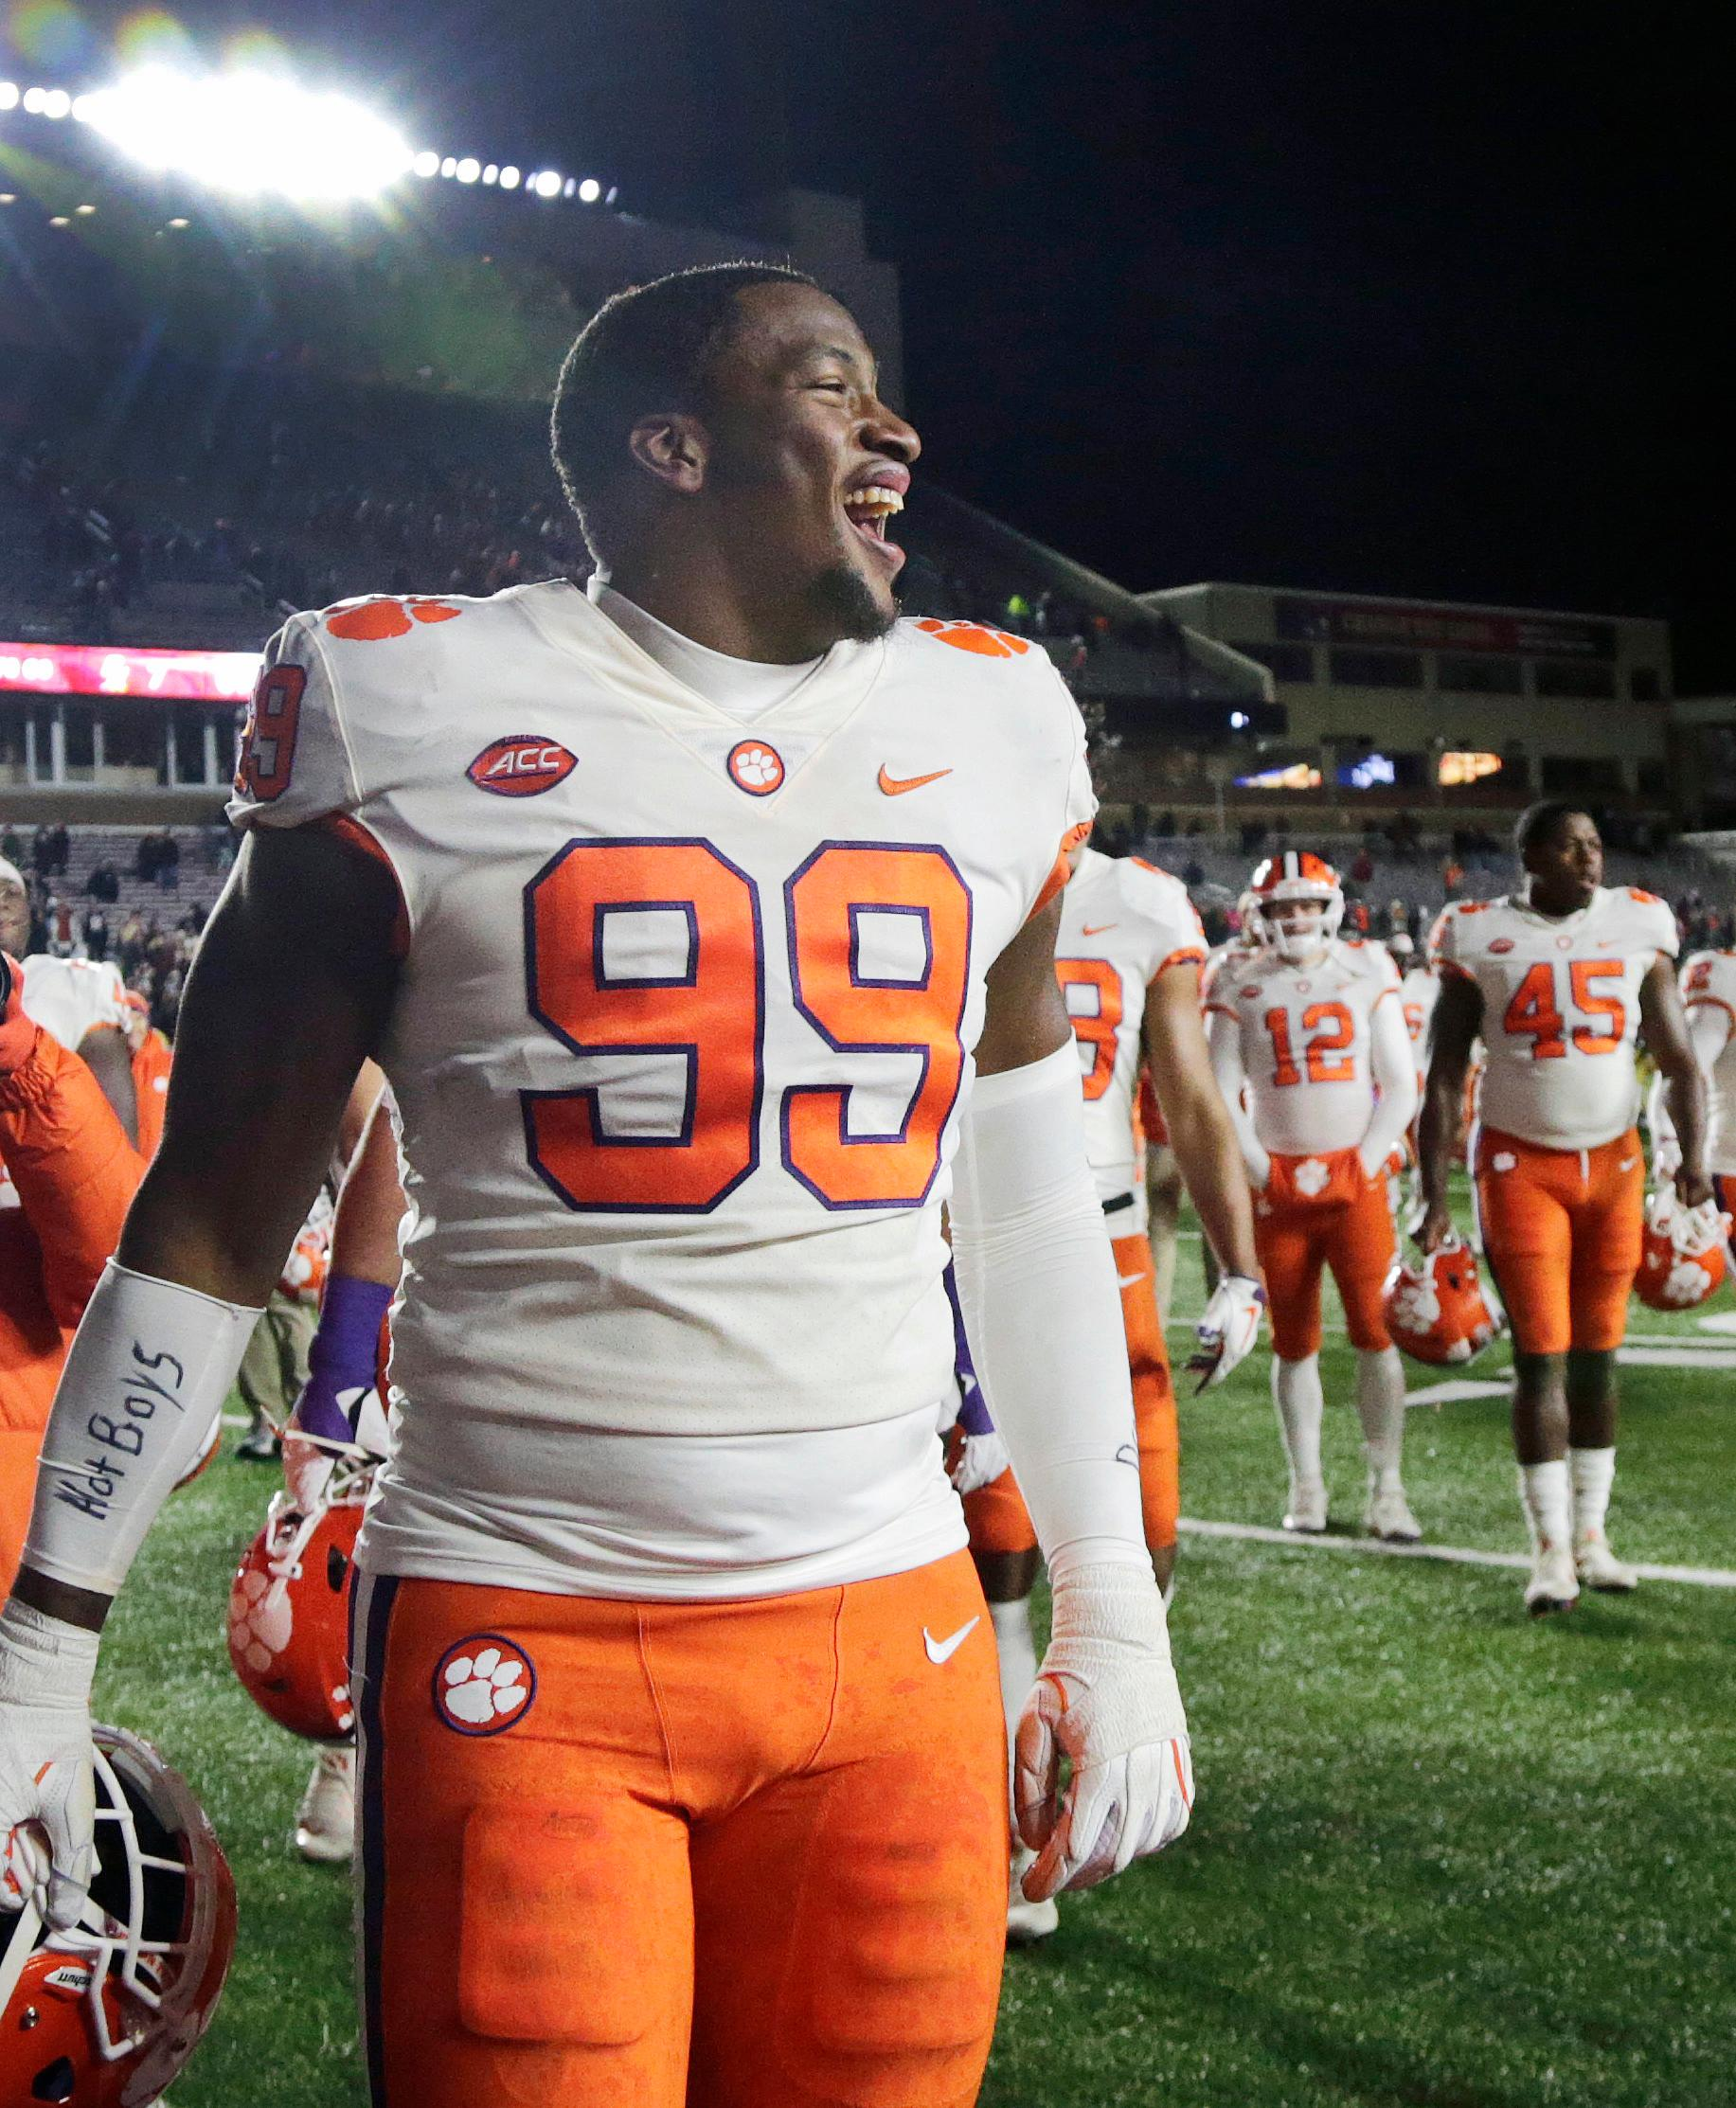 FILE - In this Nov. 10, 2018, file photo, Clemson defensive end Clelin Ferrell (99) and teammates celebrate their 27-7 victory over Boston College in a game in Boston. Ferrell was named to the 2018 AP All-America NCAA college football team, Monday, Dec. 10, 2018.(AP Photo/Elise Amendola, File)